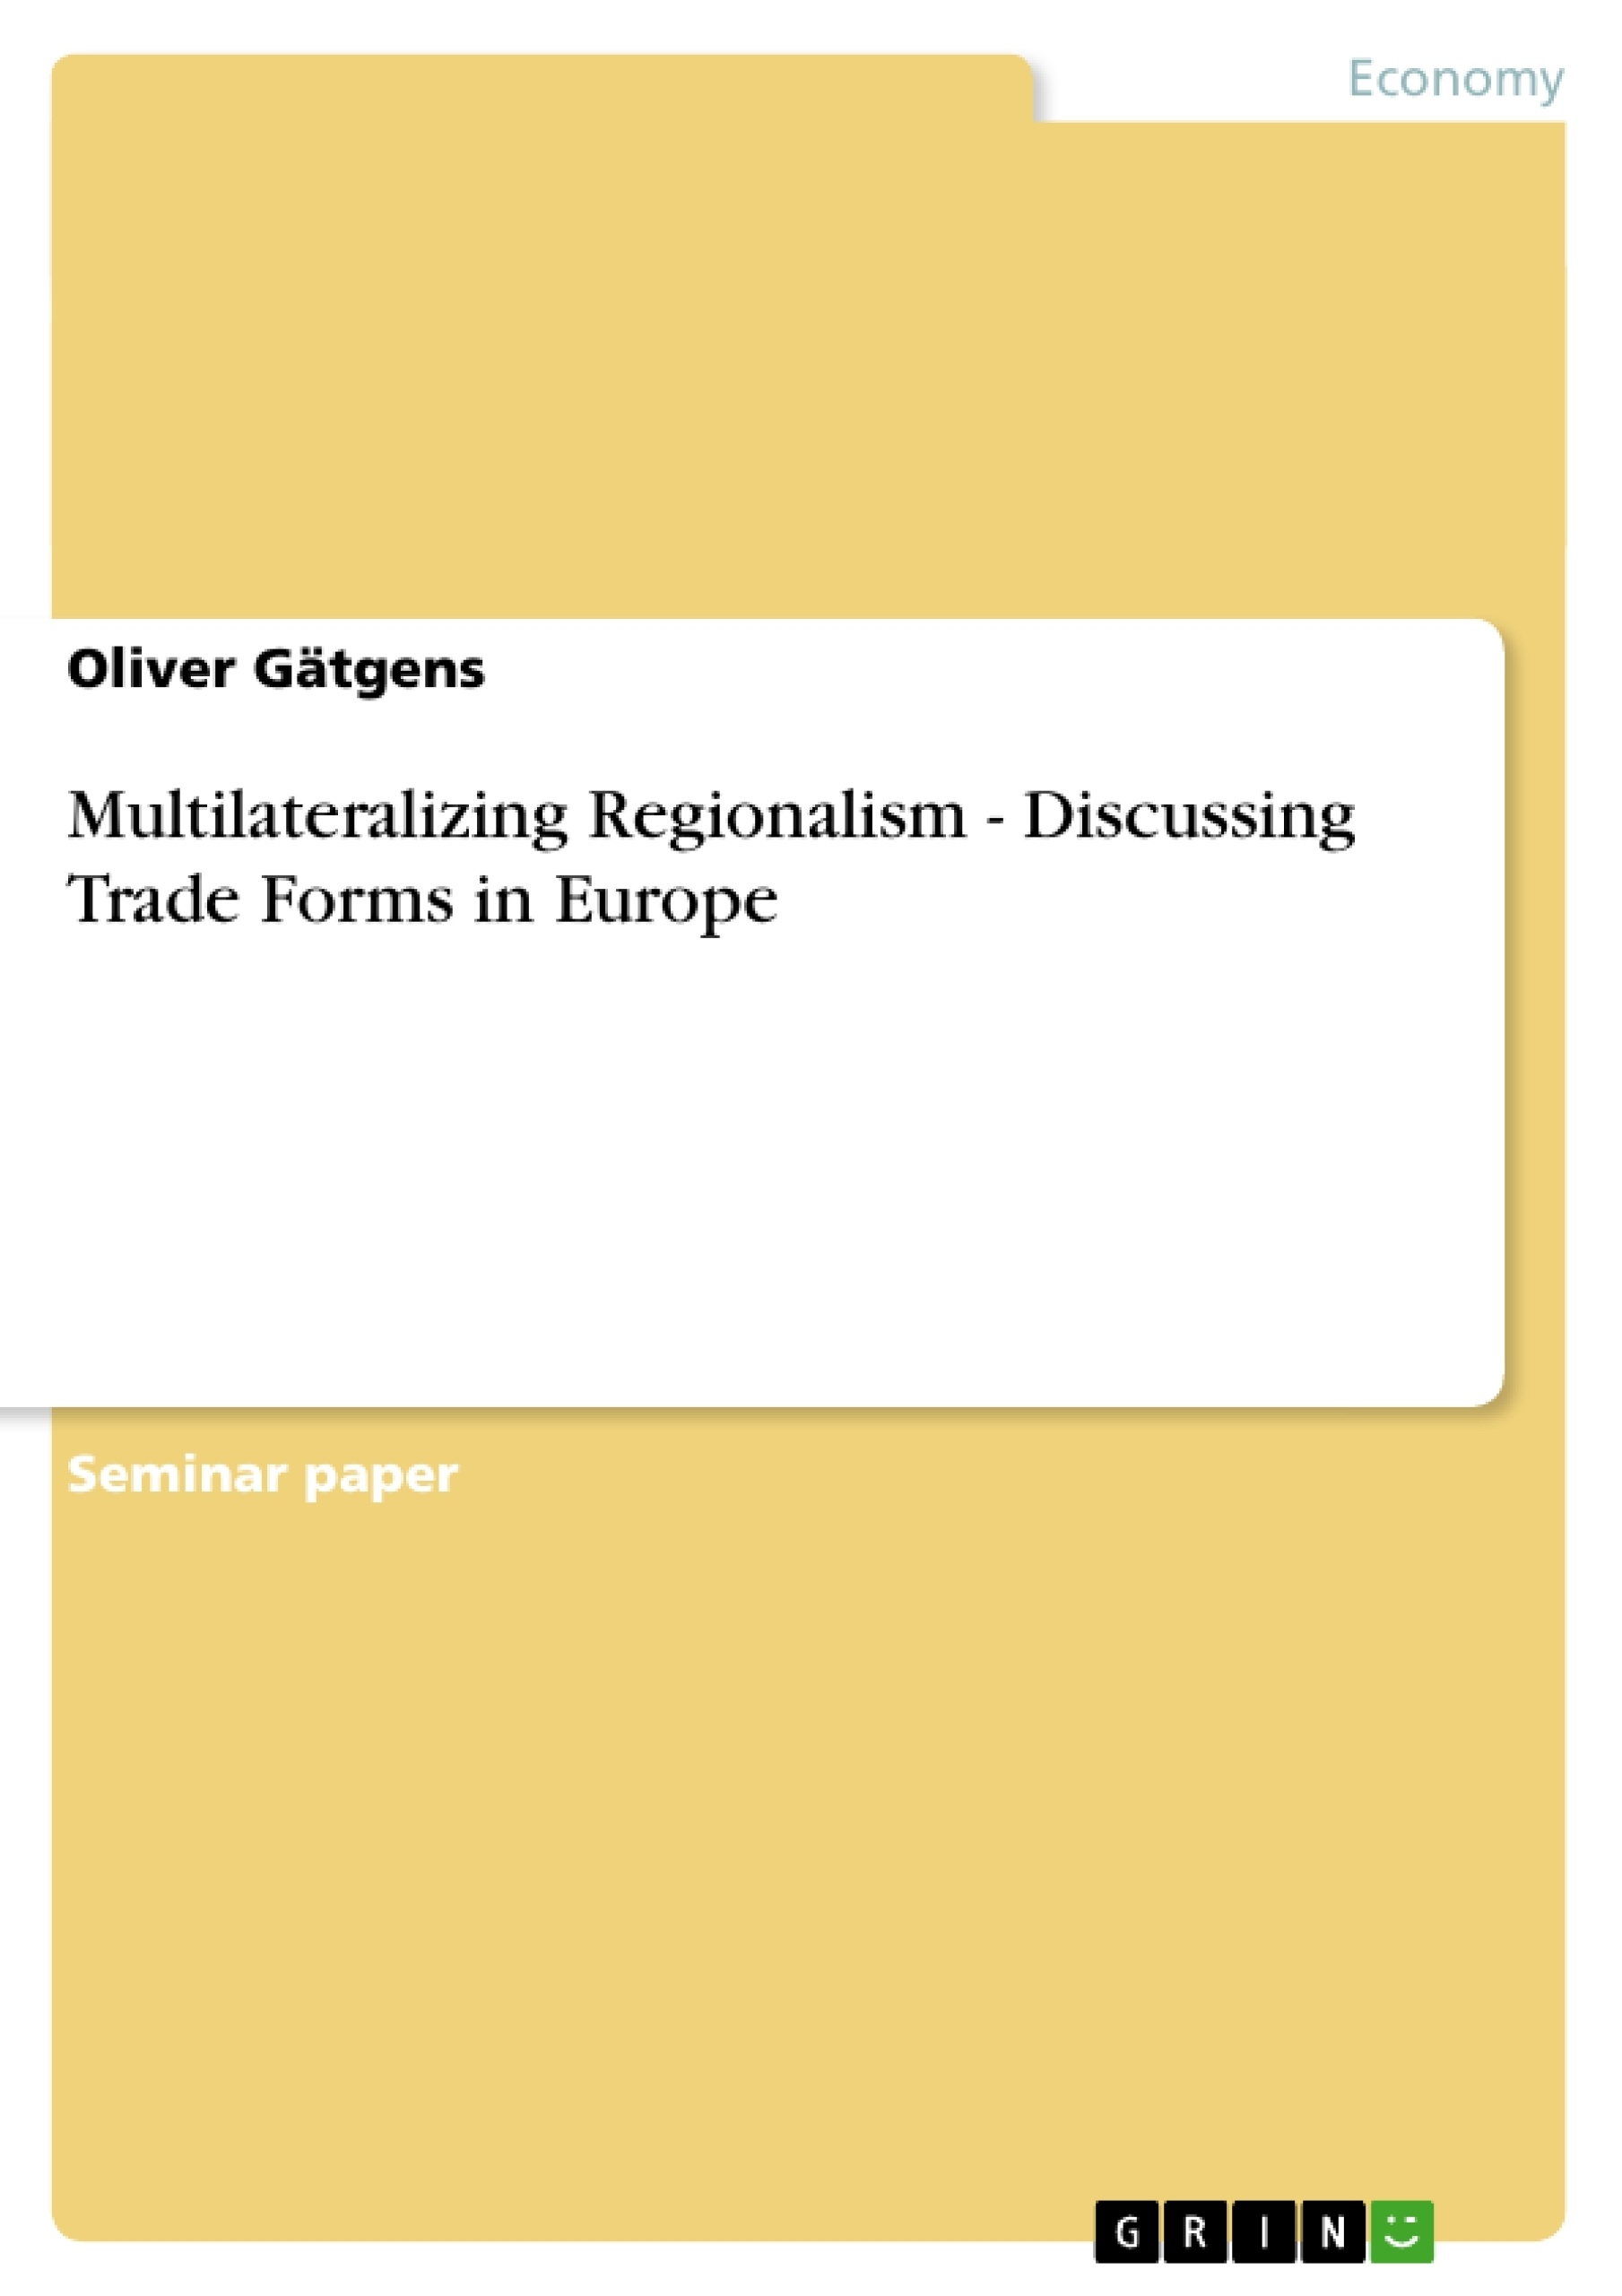 Title: Multilateralizing Regionalism - Discussing Trade Forms in Europe